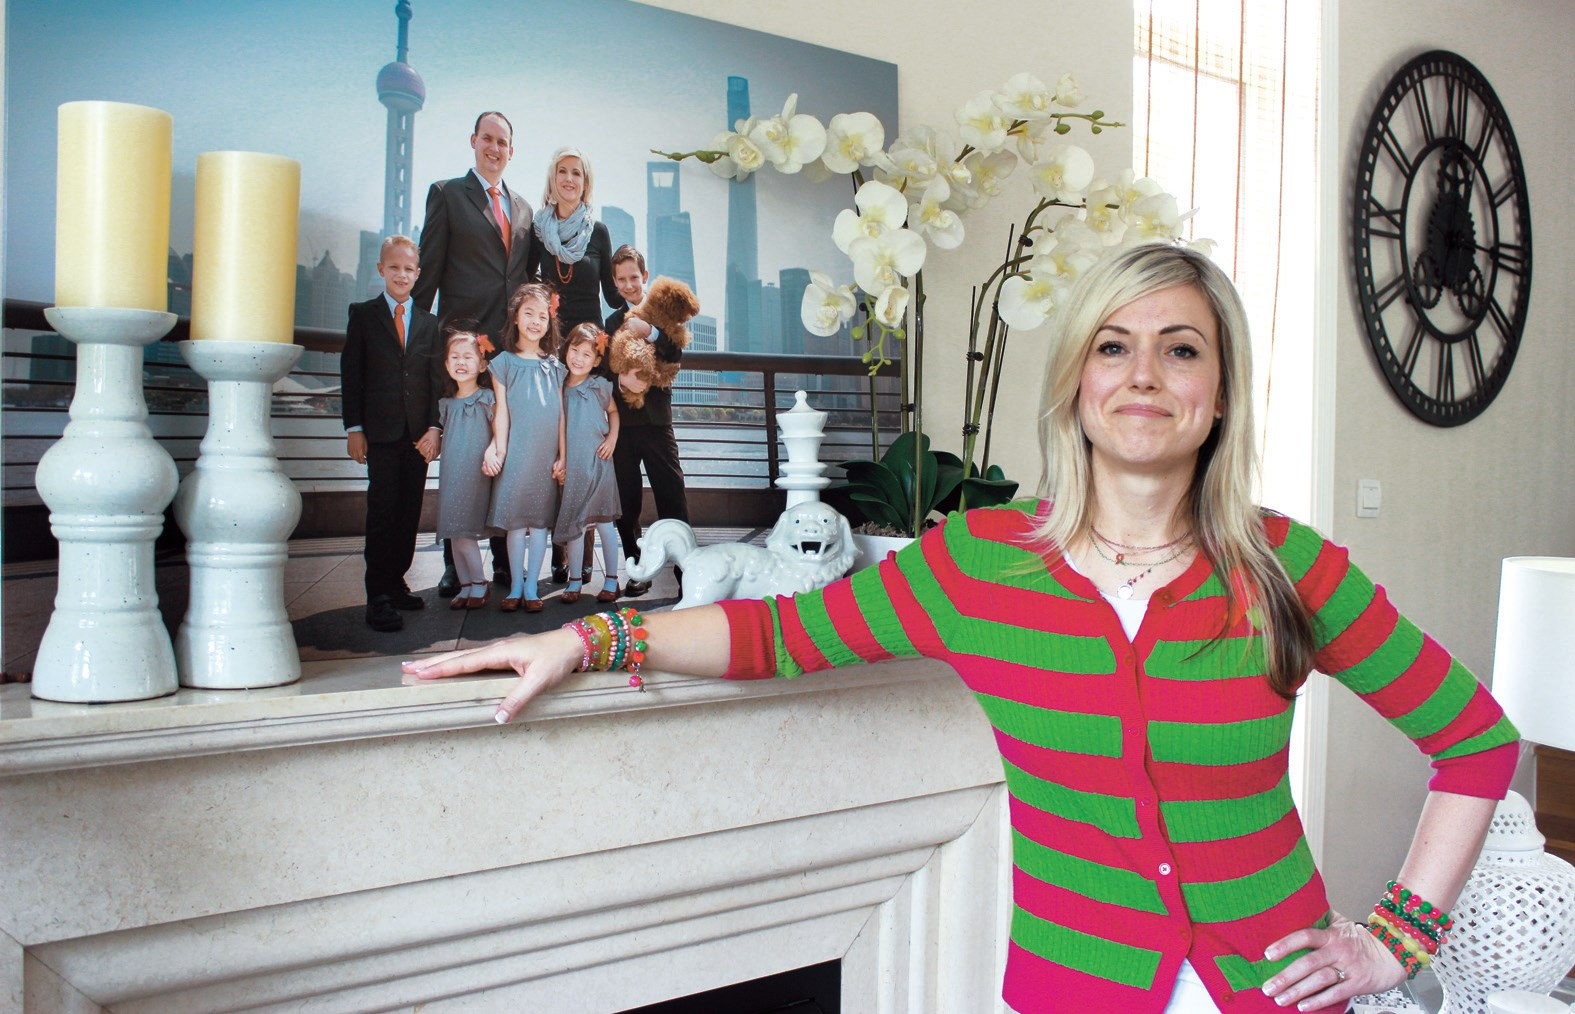 New Yorker Suzanne Calton is pictured at her Shanghai home. In the background is a photo of her family. — Wang Haoling